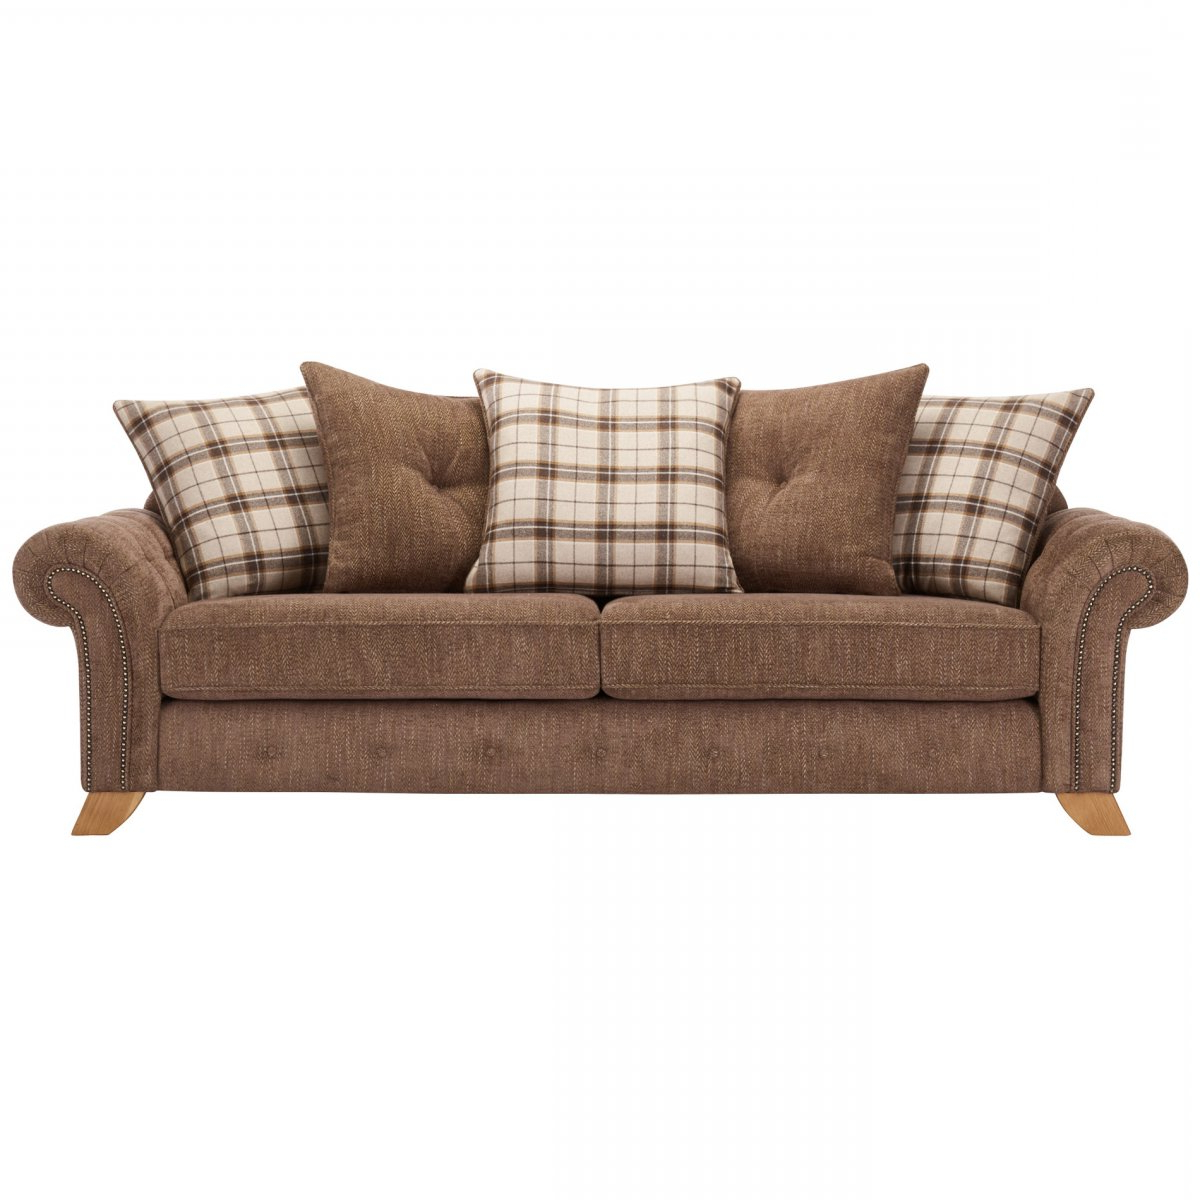 Montana Sofas Regarding Best And Newest Montana 4 Seater Sofa With Pillow Back In Brown Fabric (View 9 of 20)